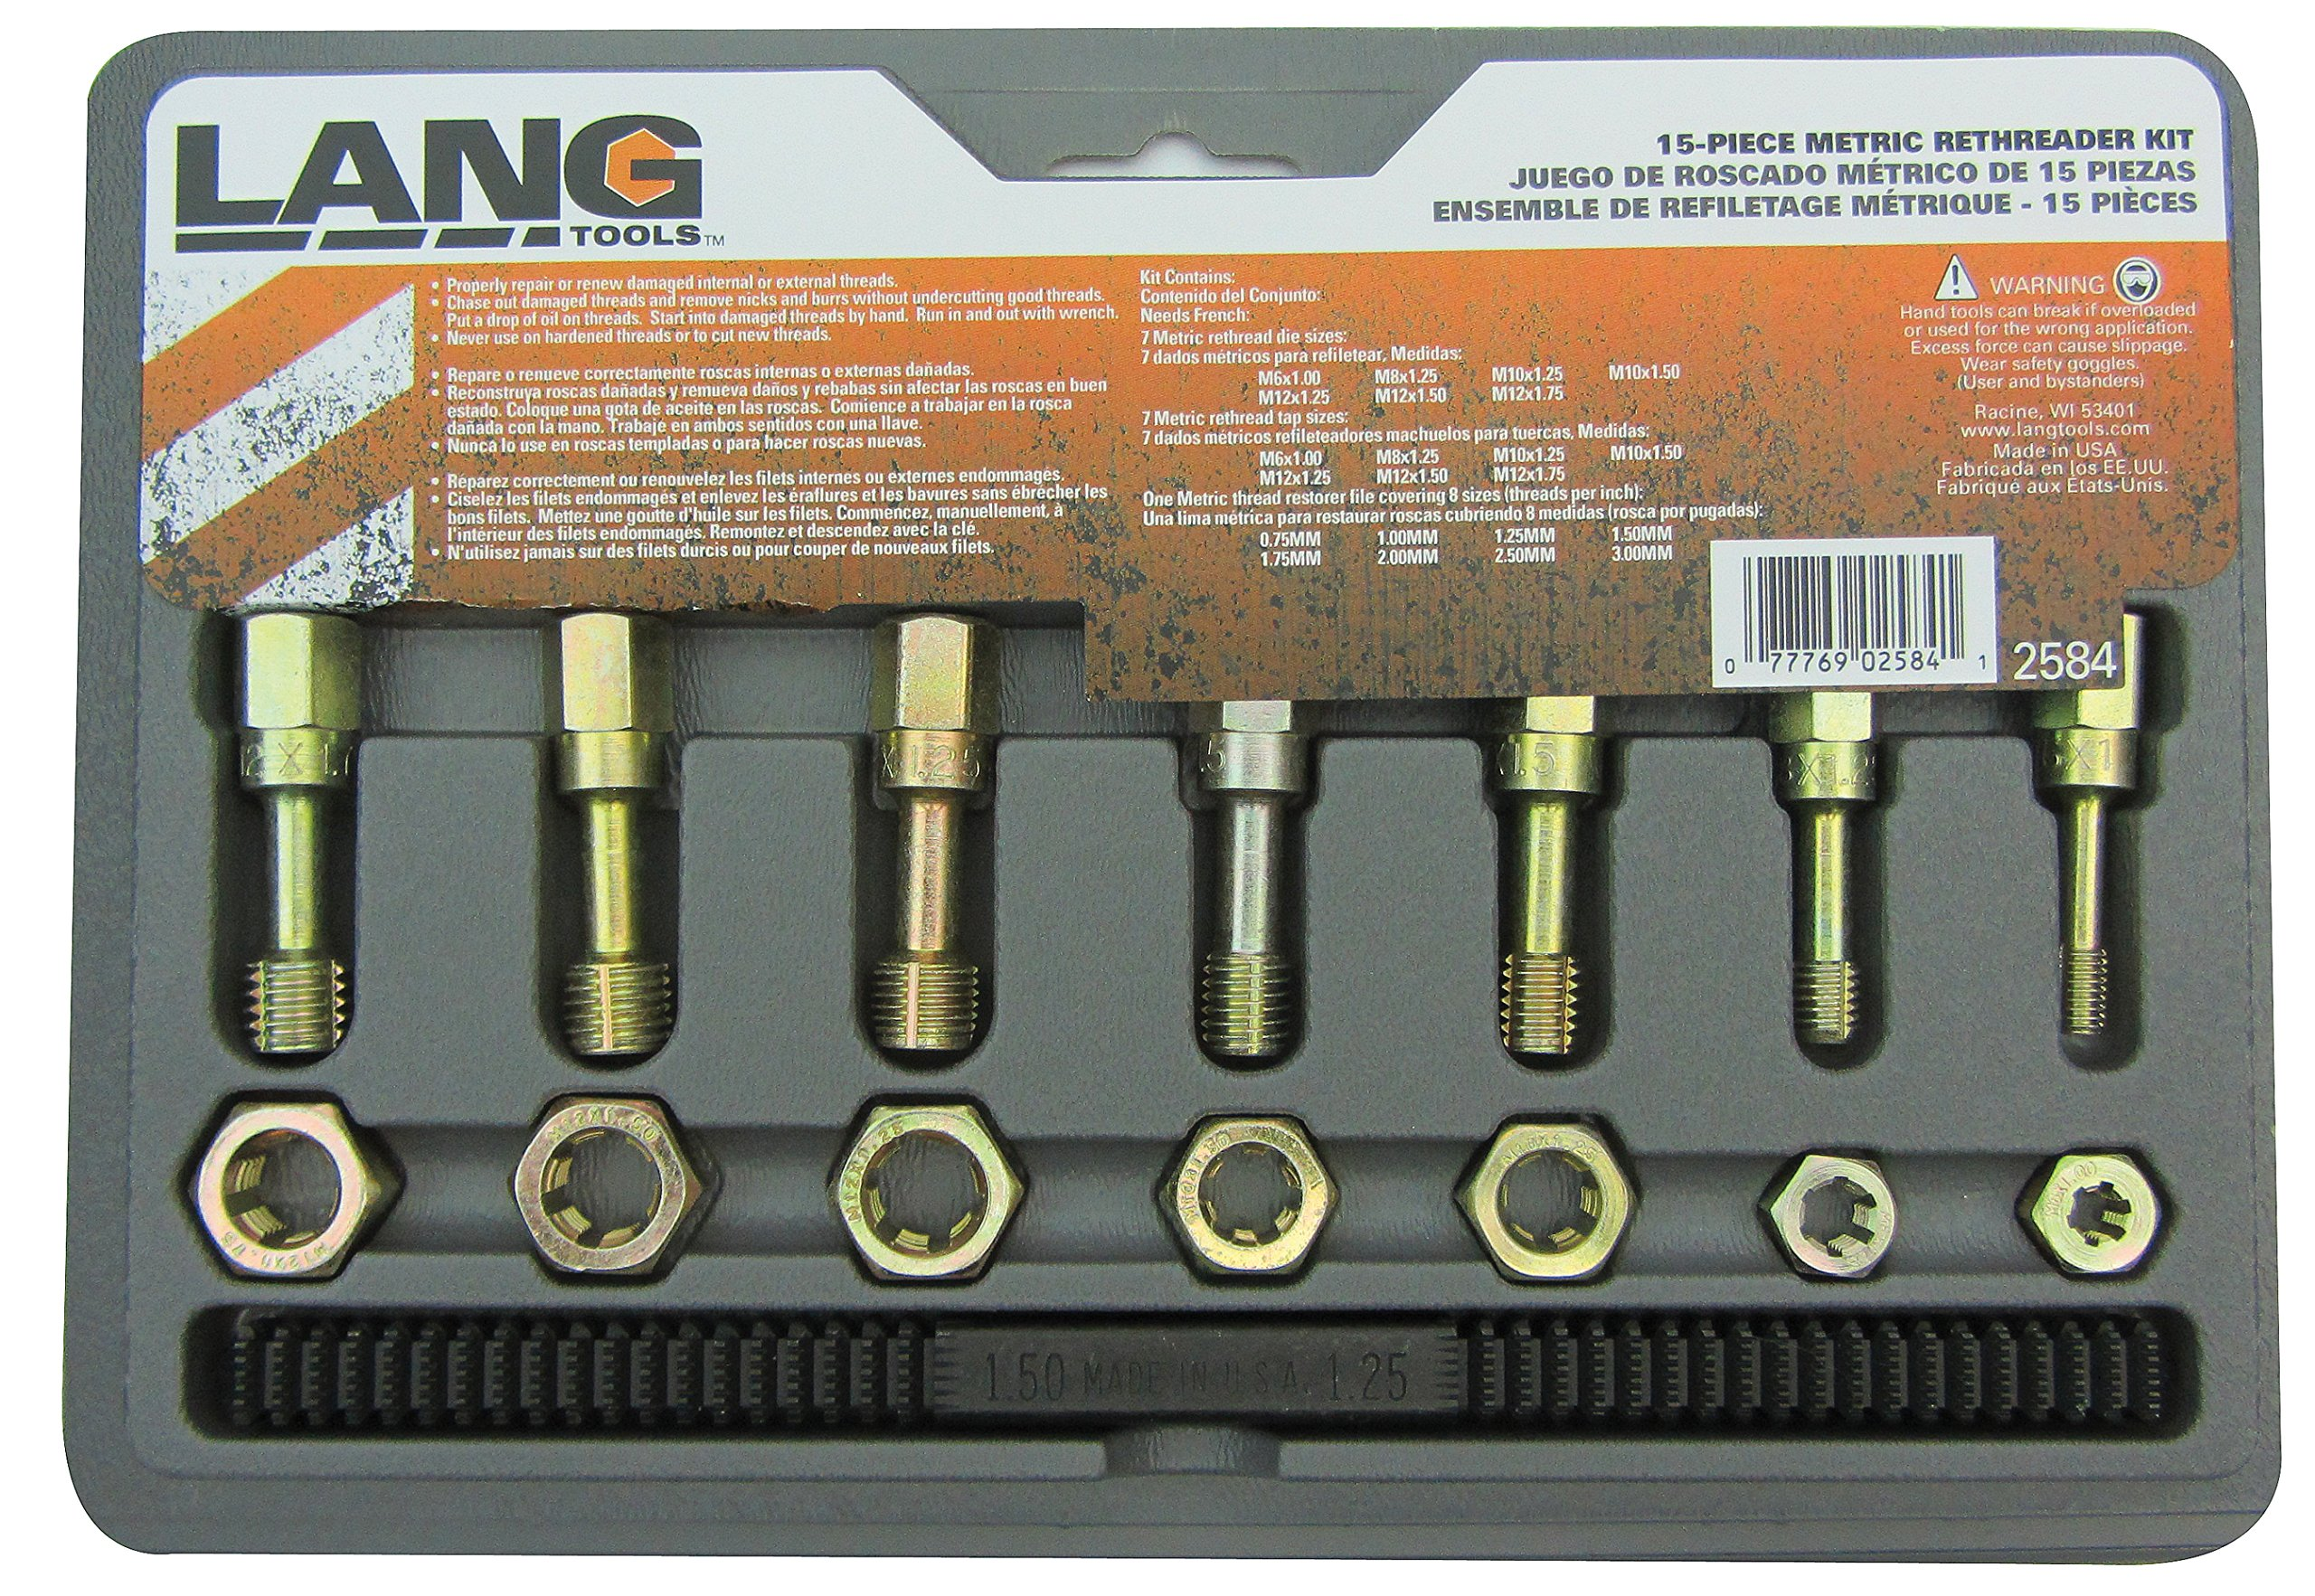 Amazon.com: Lang Tools 2584 15-Piece Metric Thread Restorer Set: Automotive